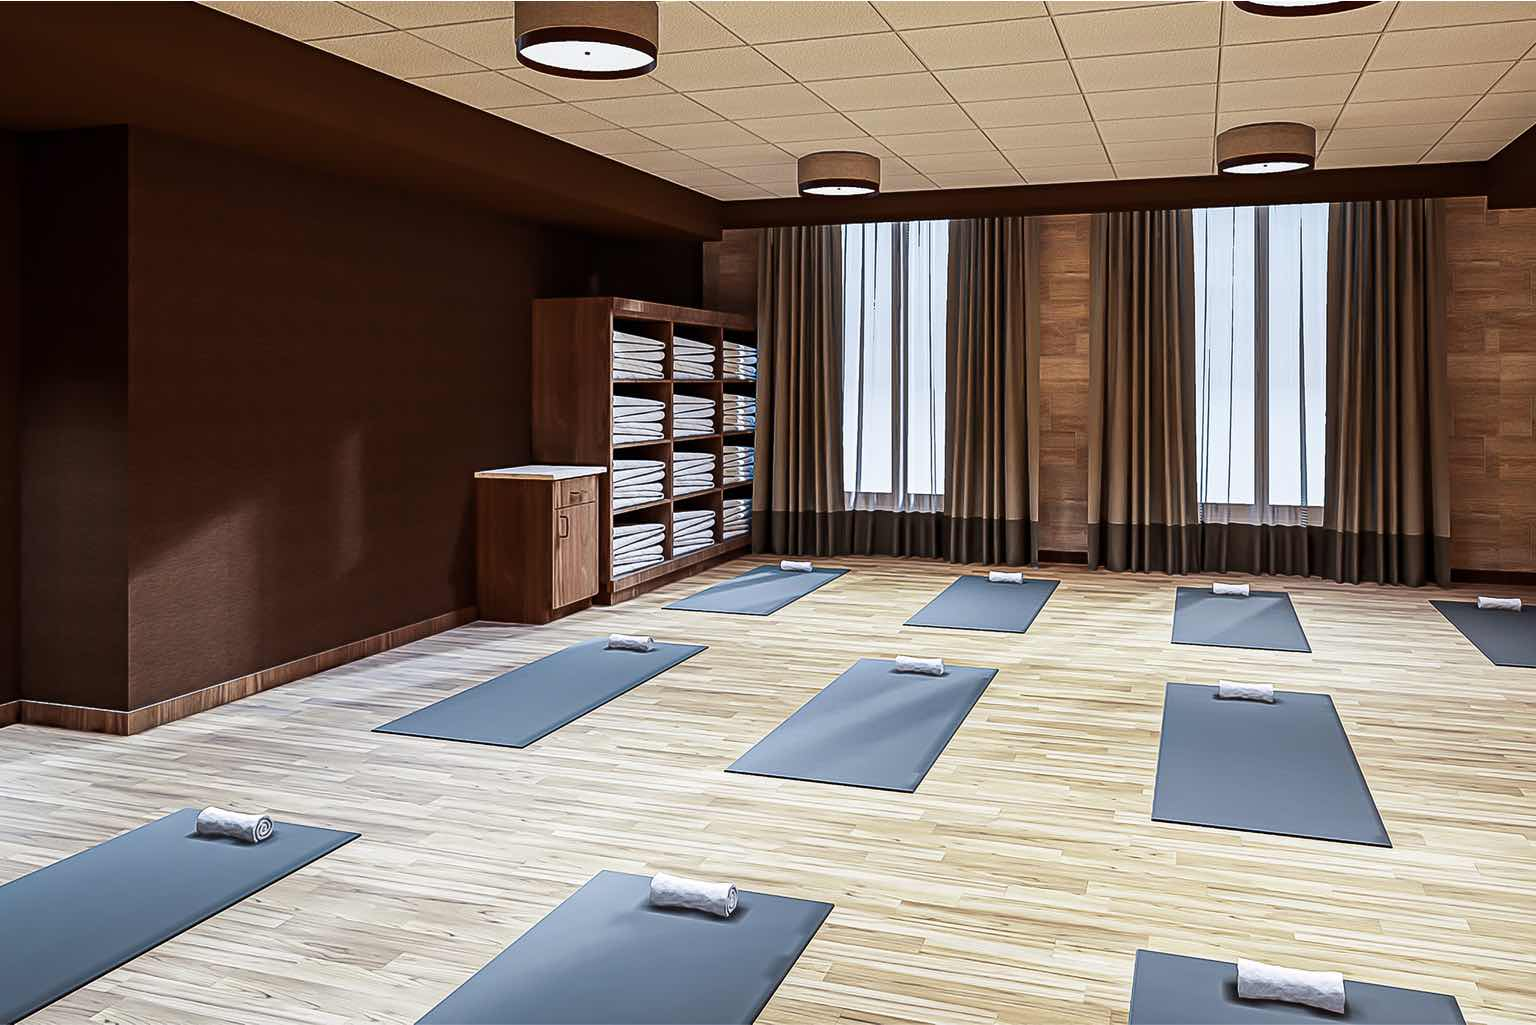 The yoga studio at Life Time 23rd Street is a place to build strength, flexibility and mindfulness.